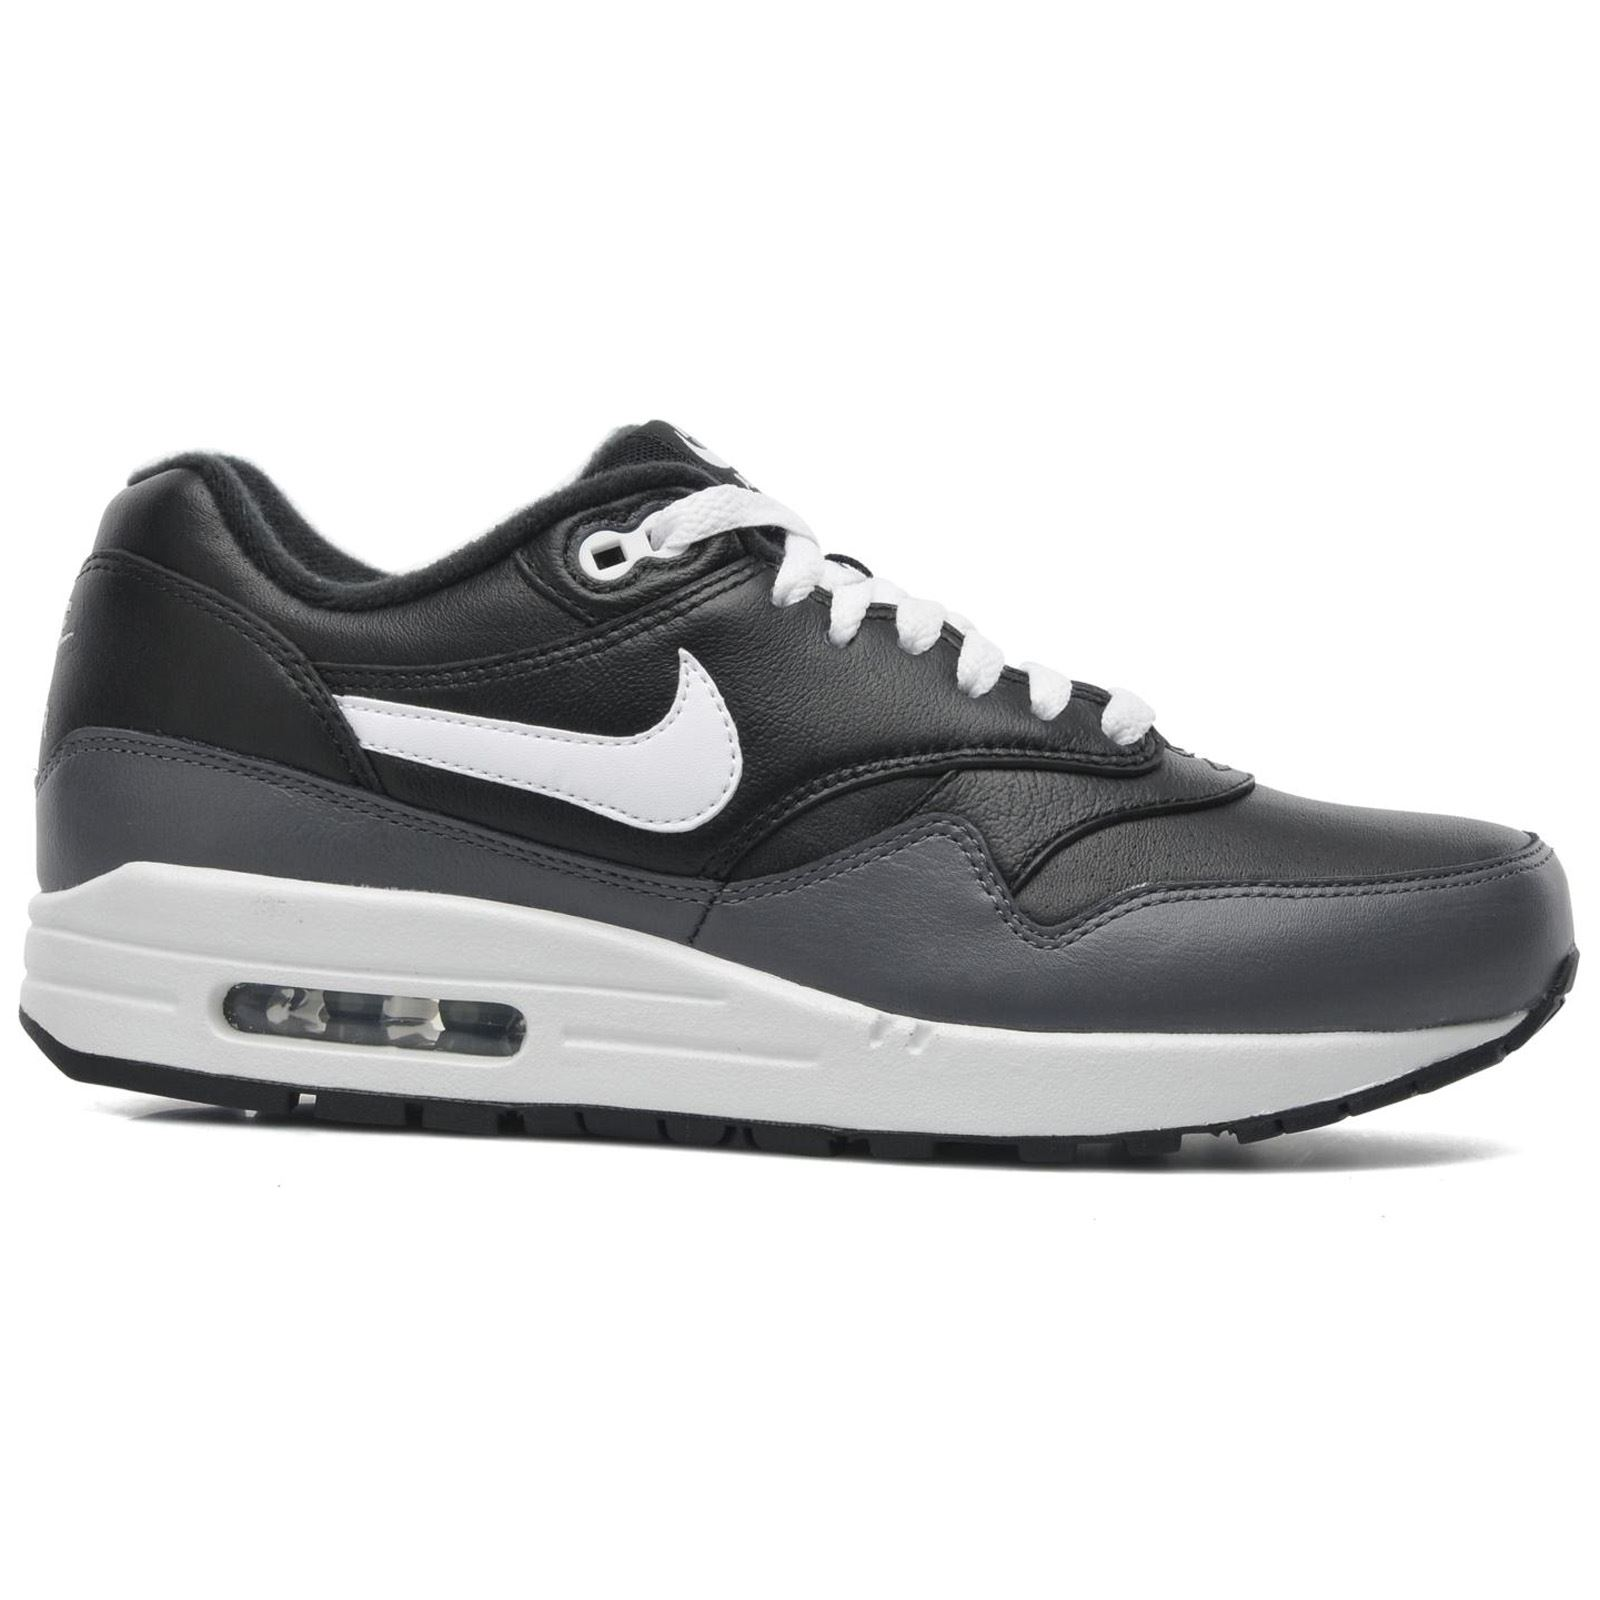 fcrvz Nike Air Max 1 LTR Leather Mens Trainers | eBay